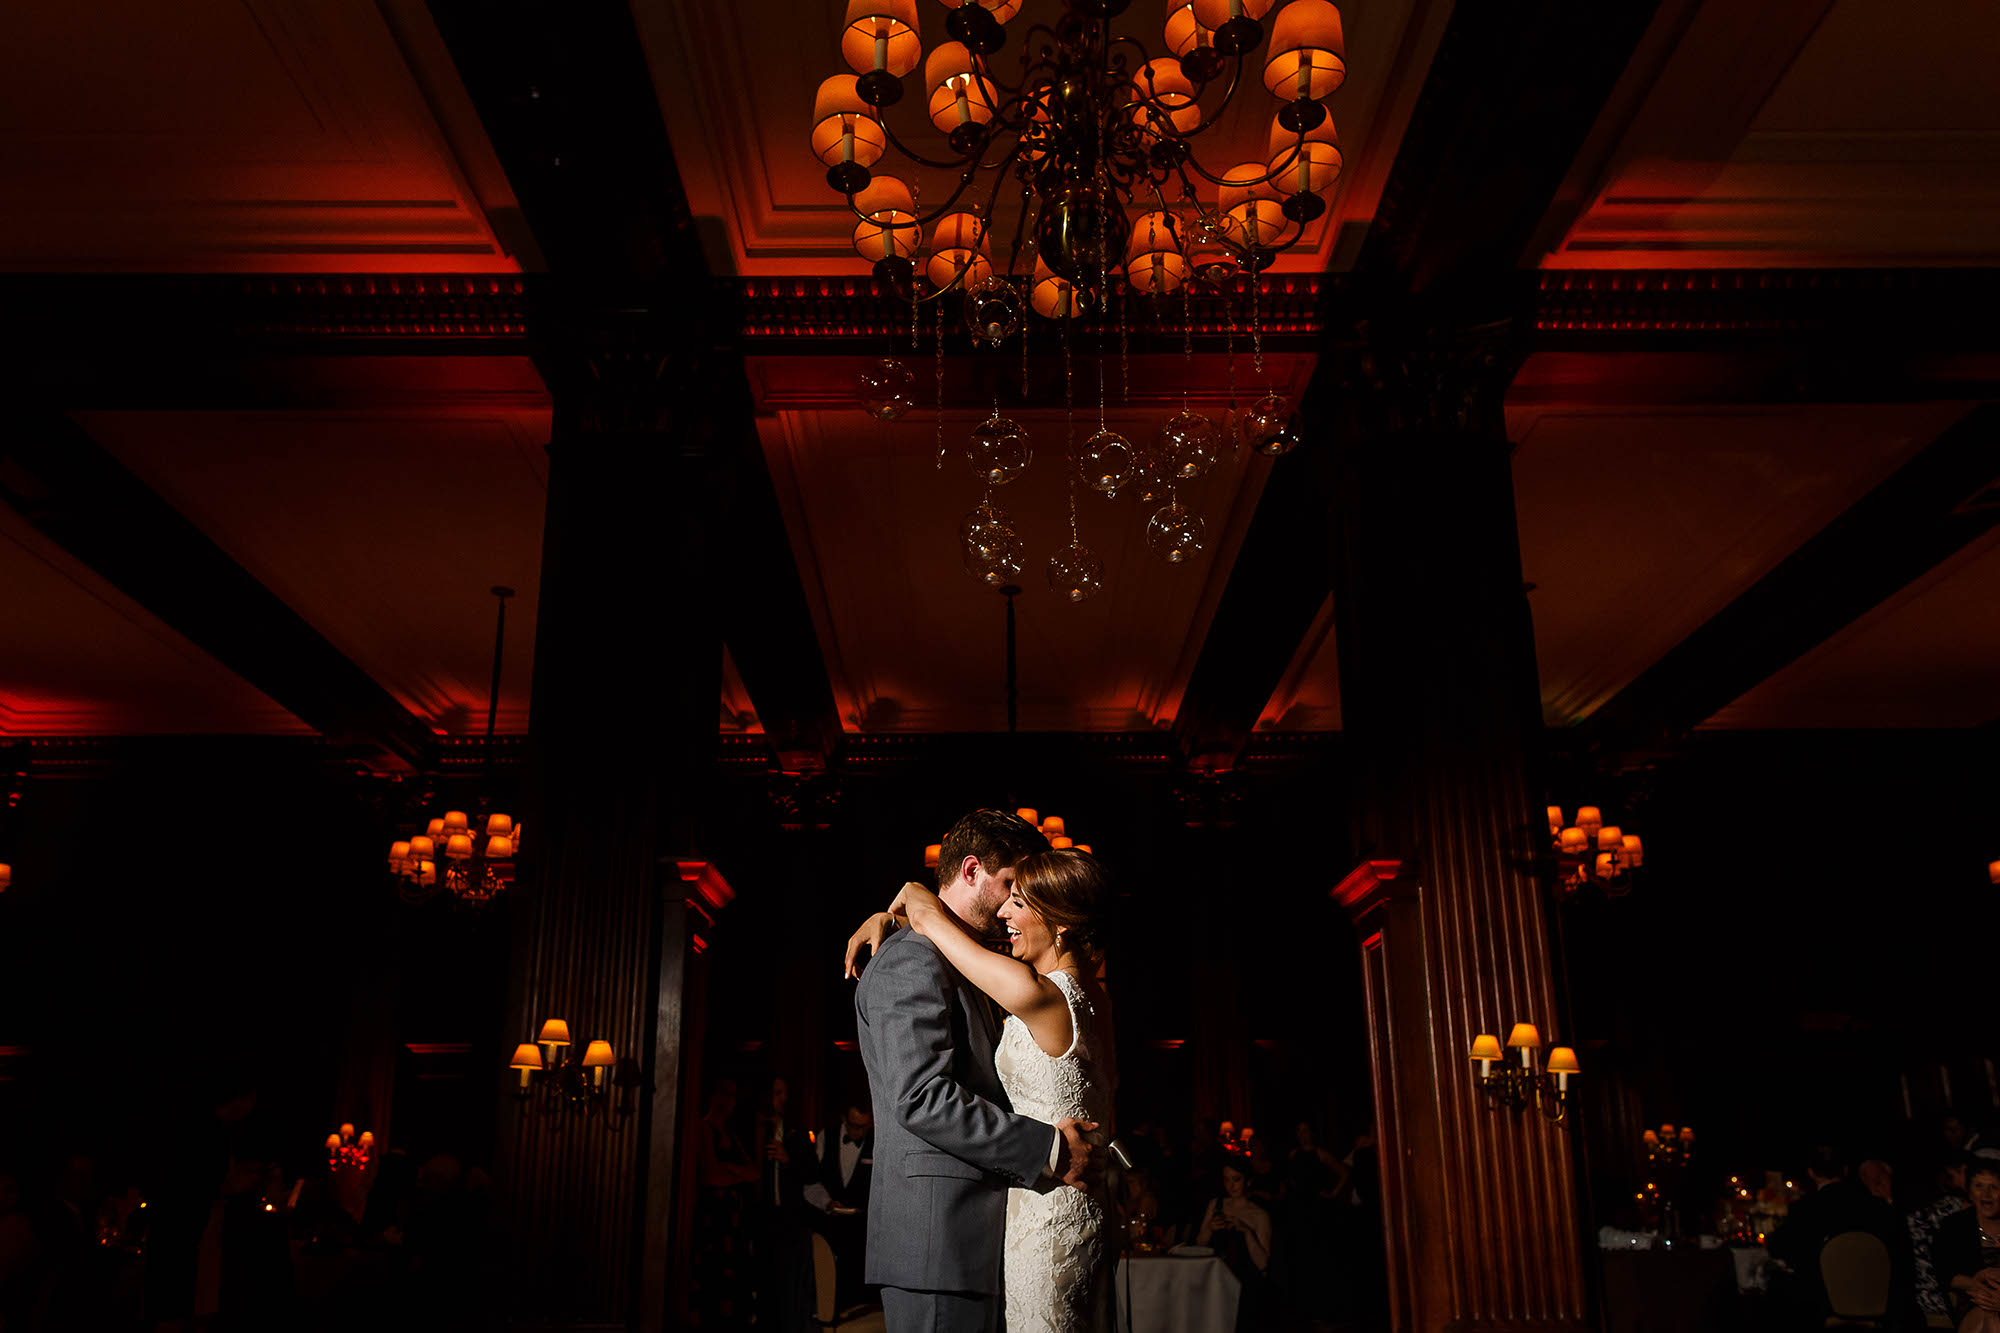 A bride and groom with their arms around each other during their first dance at the ceremony under a chandelier on the floor of the Union Club in Cleveland, Ohio.